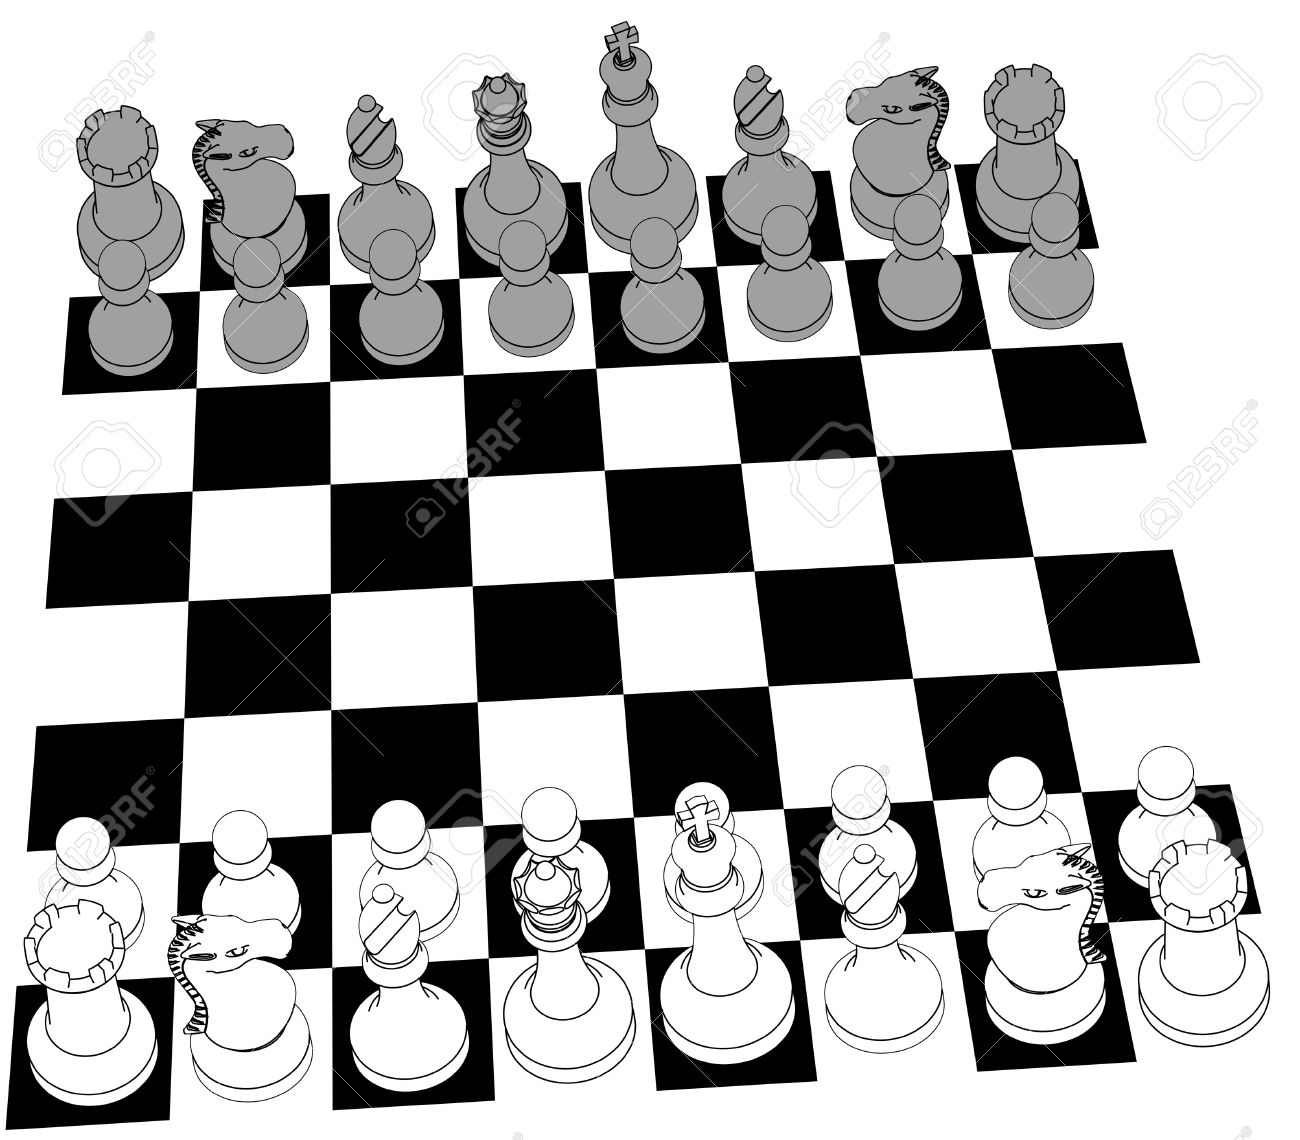 Board Game Pieces Clipart In Black And White.